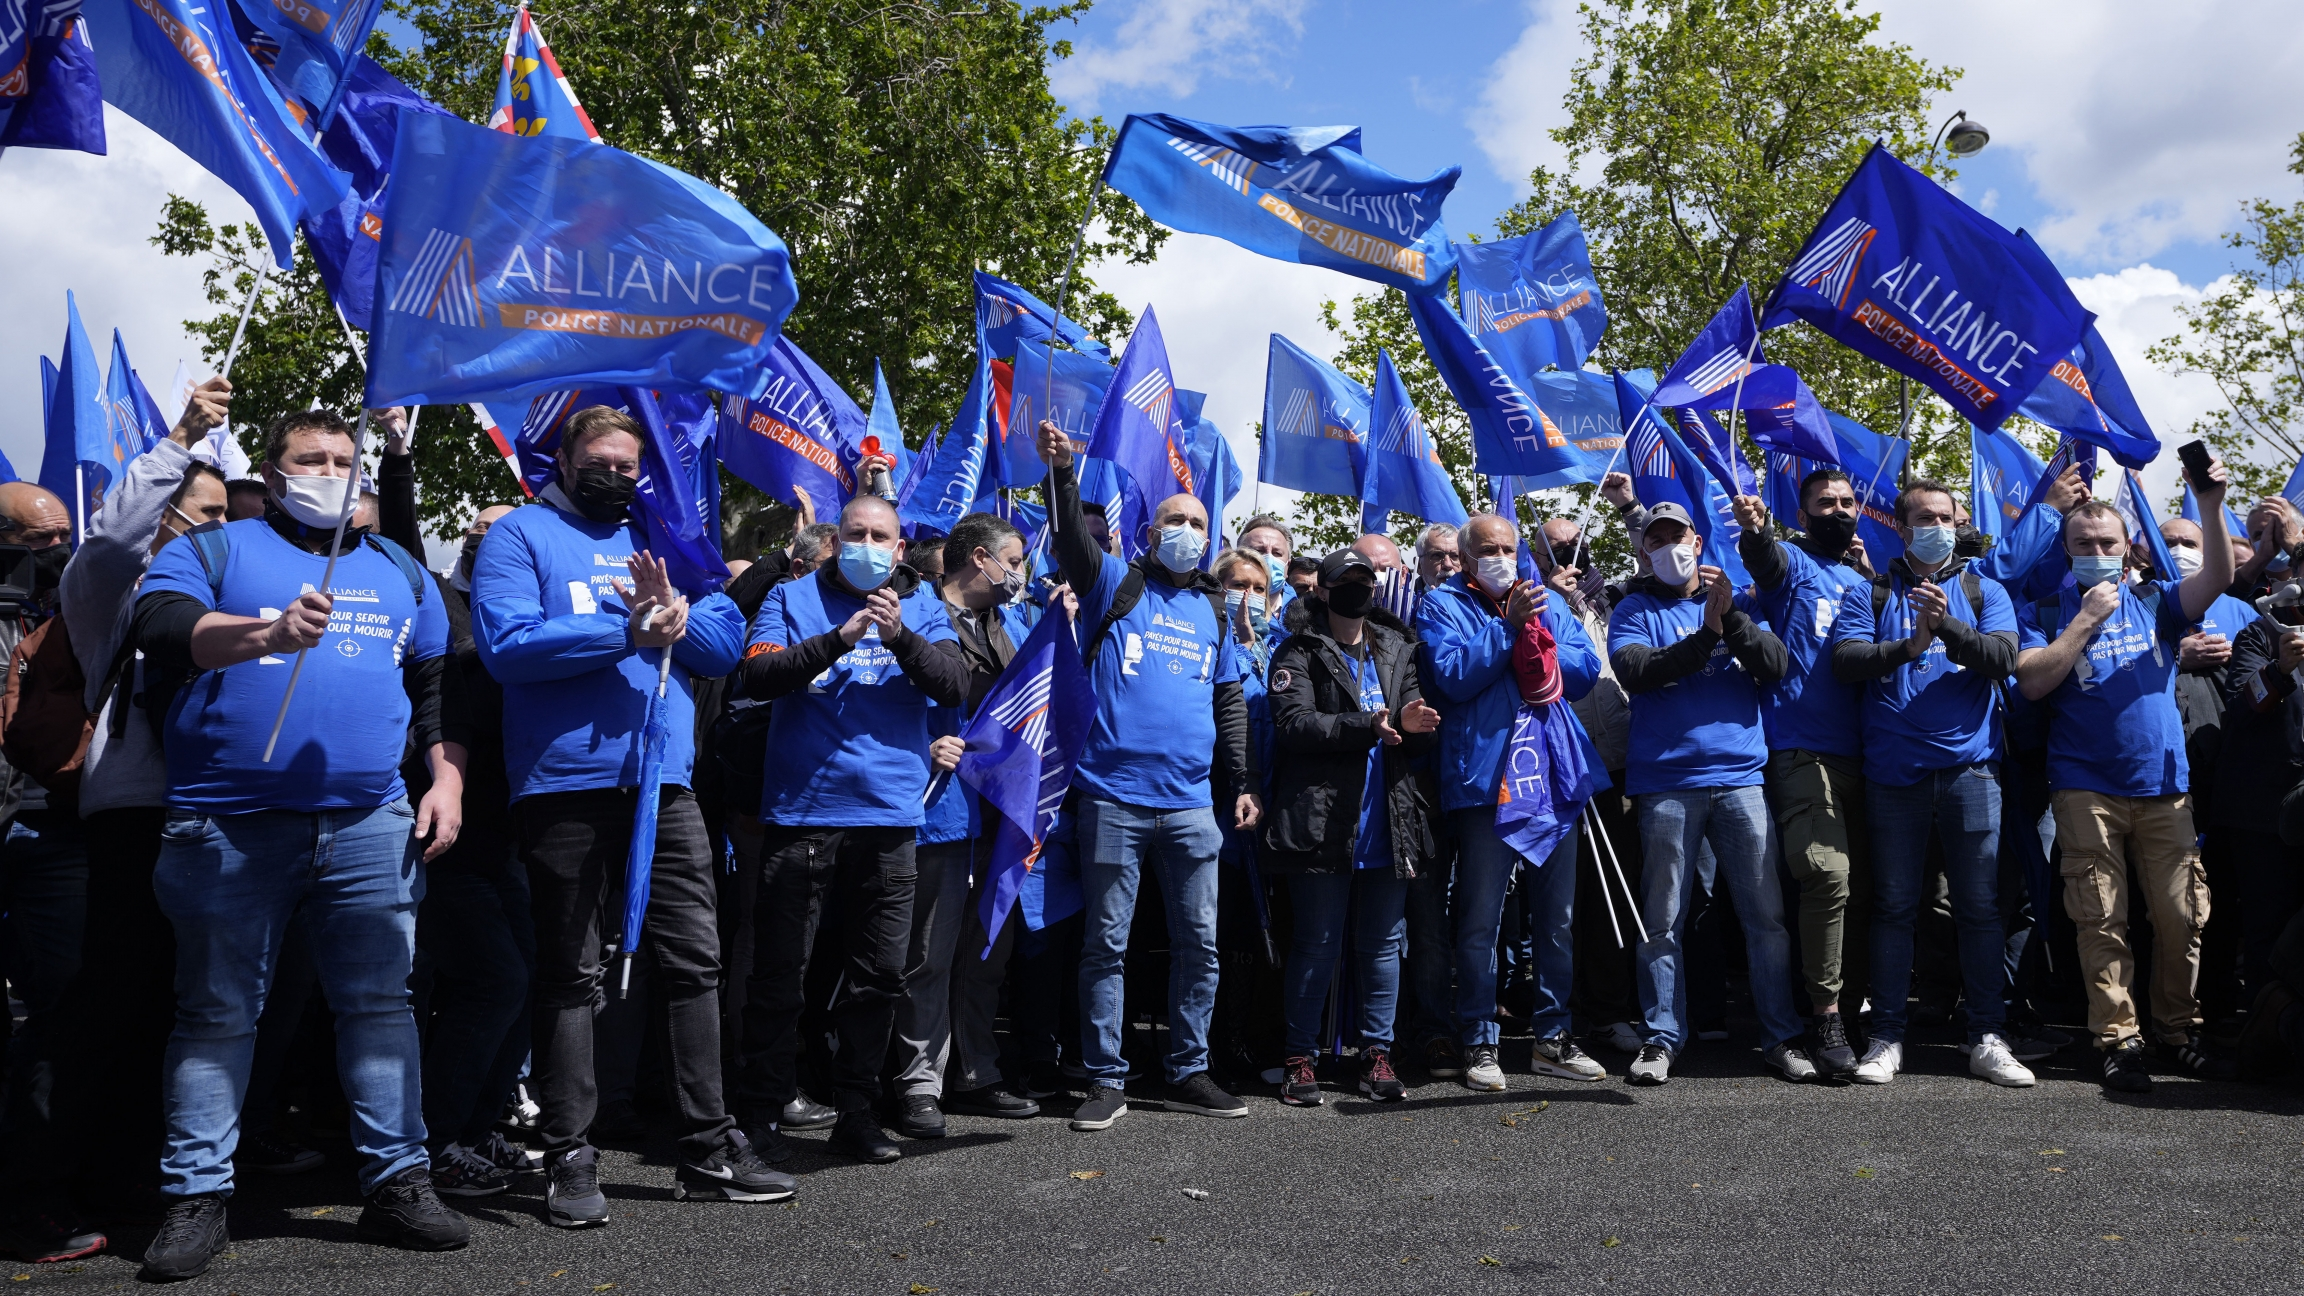 French police officers wearing blue shirts and waving blue flags demonstrate Wednesday, May 19, 2021 in Paris. French police, feeling angry, vulnerable to attacks and useless